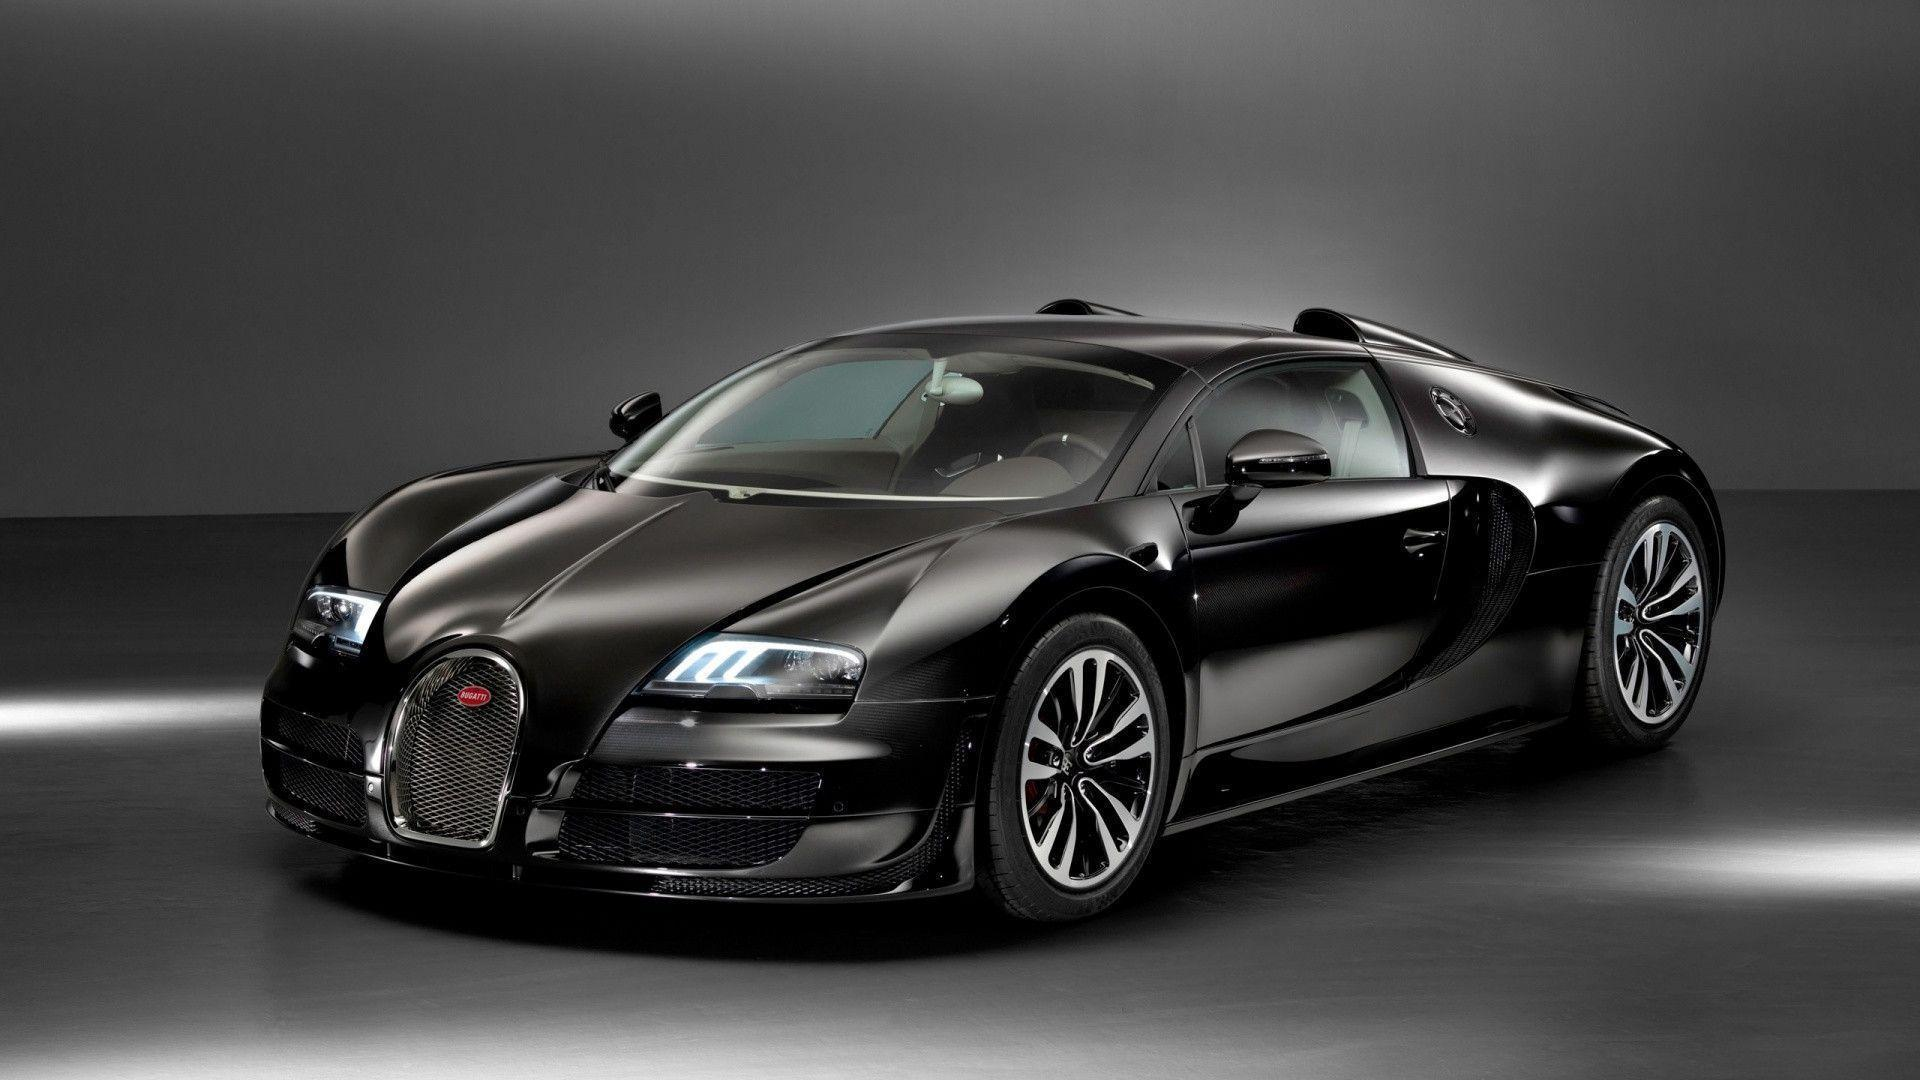 2015 Bugatti Veyron Hyper Sport Backgrounds And Wallpapers For